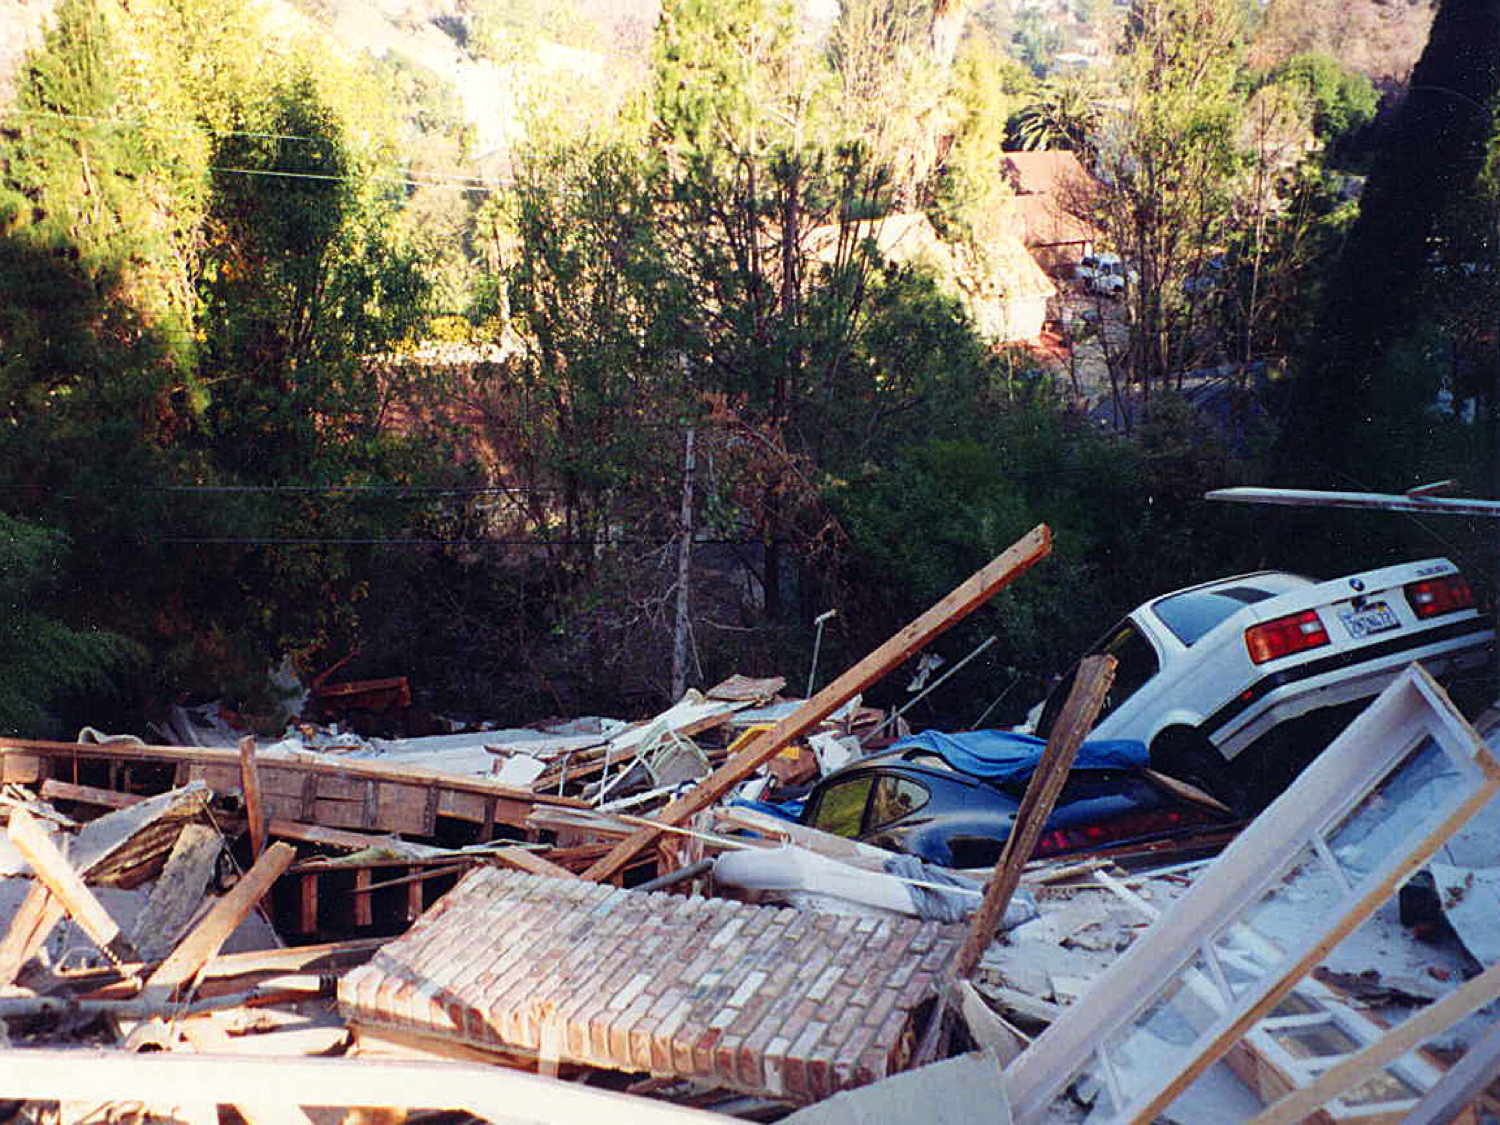 This catastrophic damage could have been stopped with a hillside home retorfit